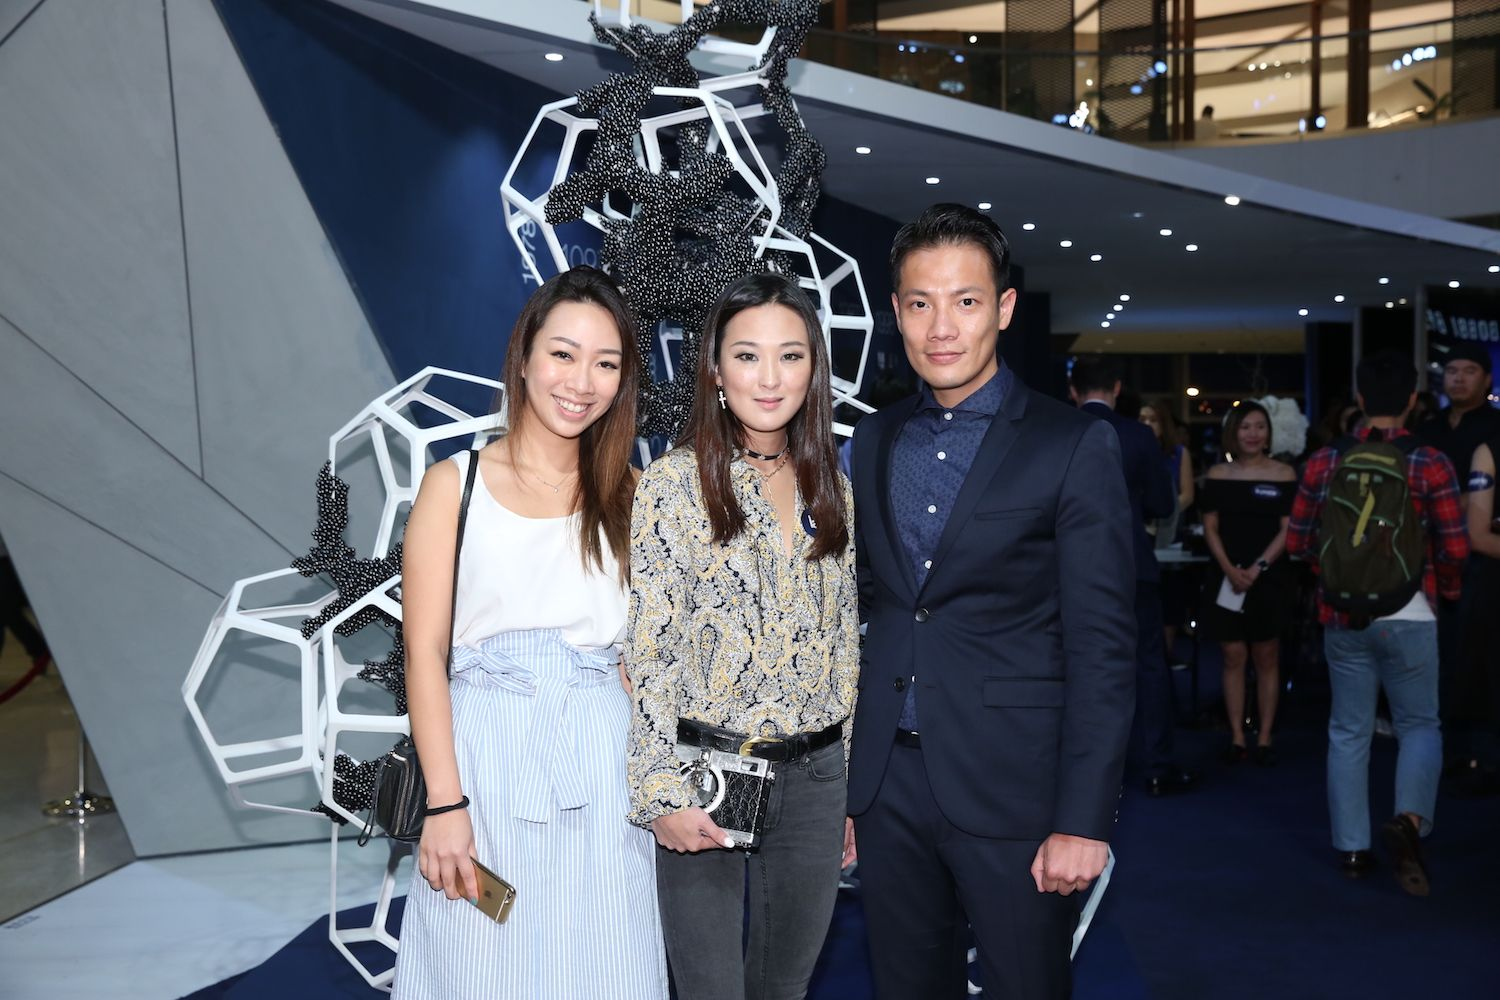 Veronica Lam, Antonia Li and Real Ting